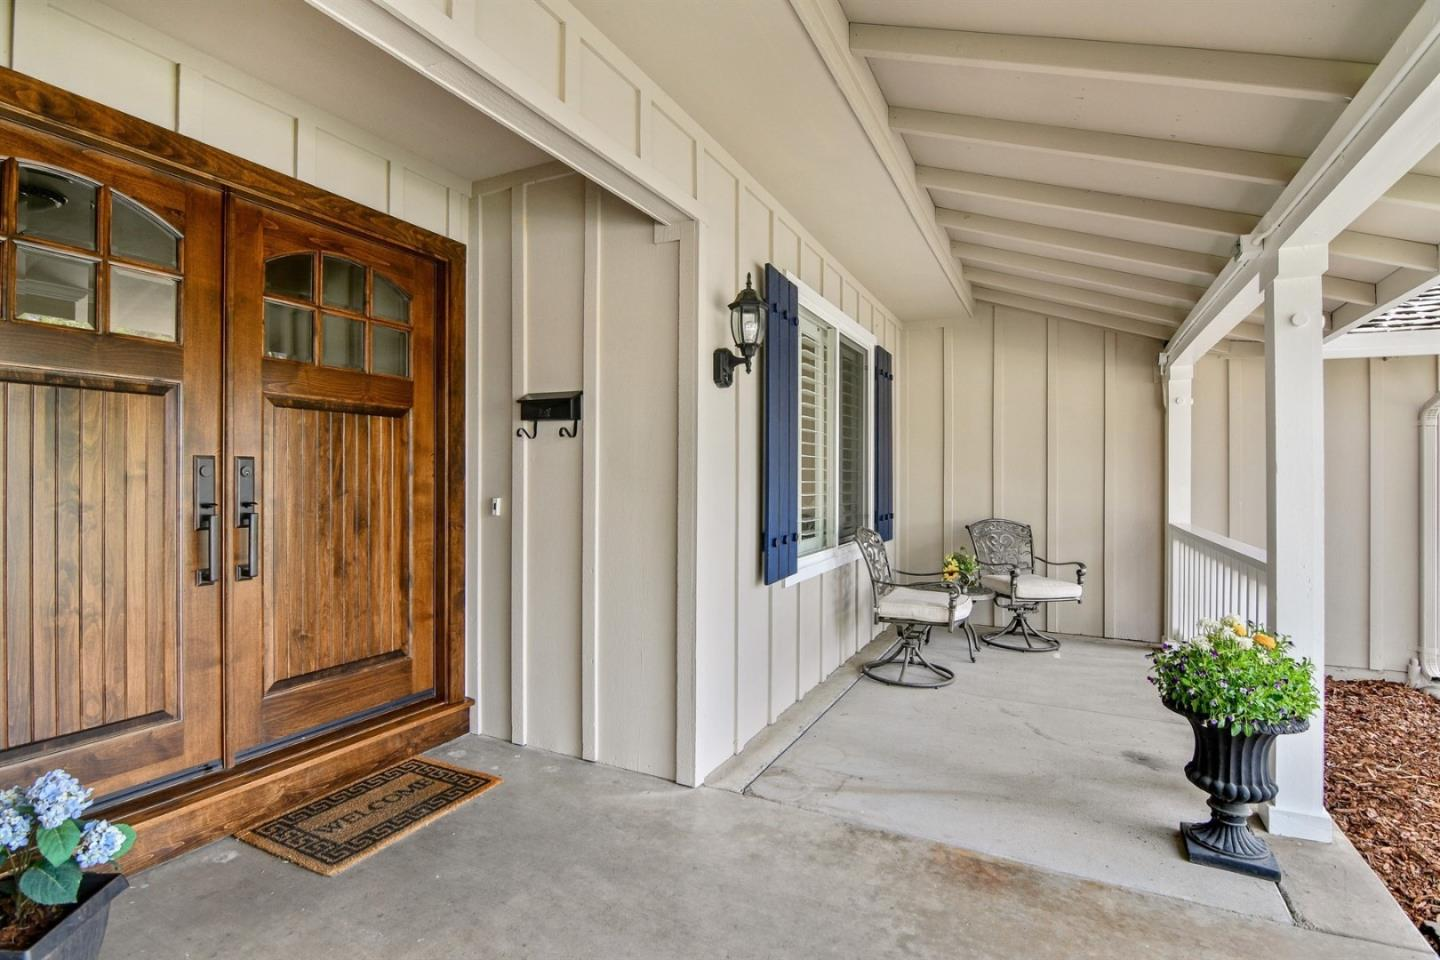 Additional photo for property listing at 6470 Mojave Dr  SAN JOSE, CALIFORNIA 95120